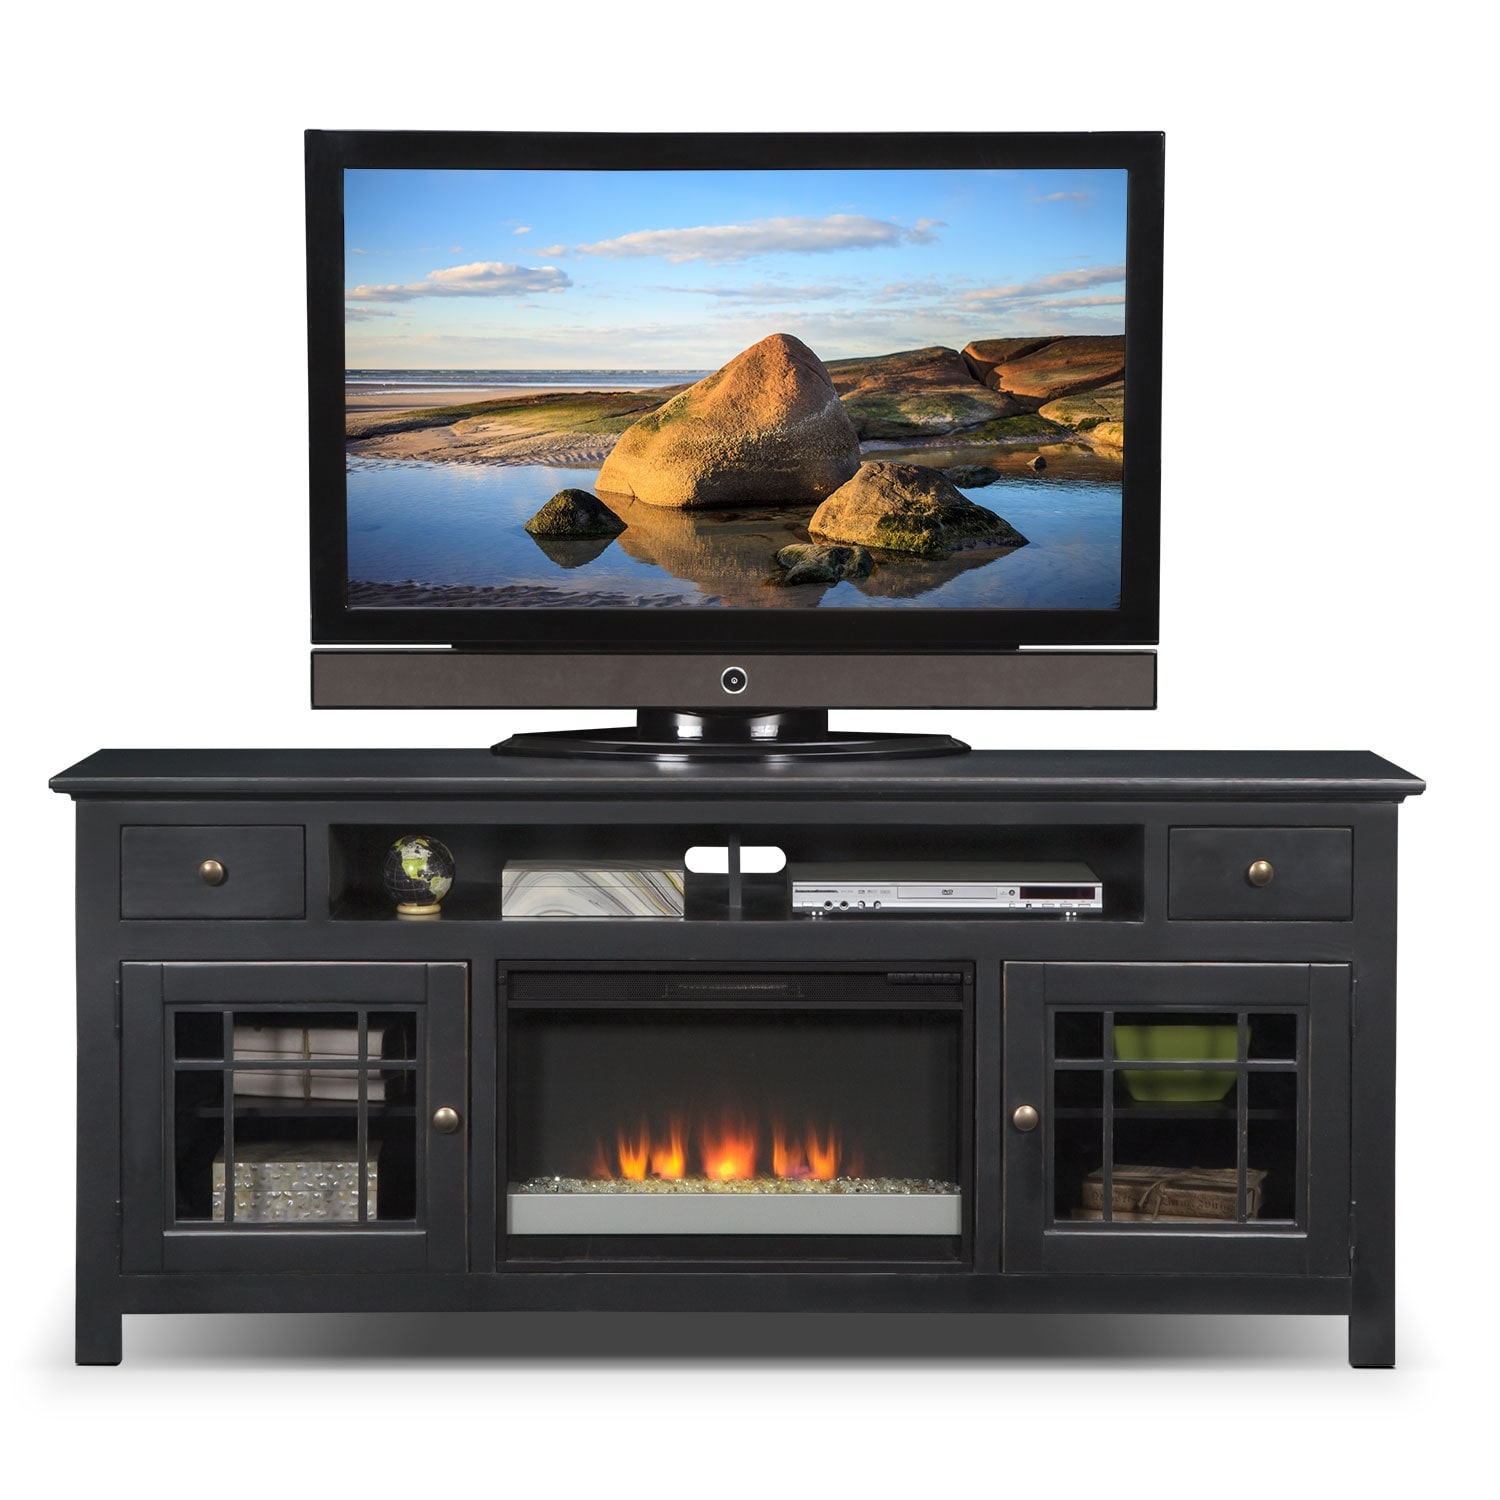 Merrick 74 Quot Fireplace Tv Stand With Contemporary Insert